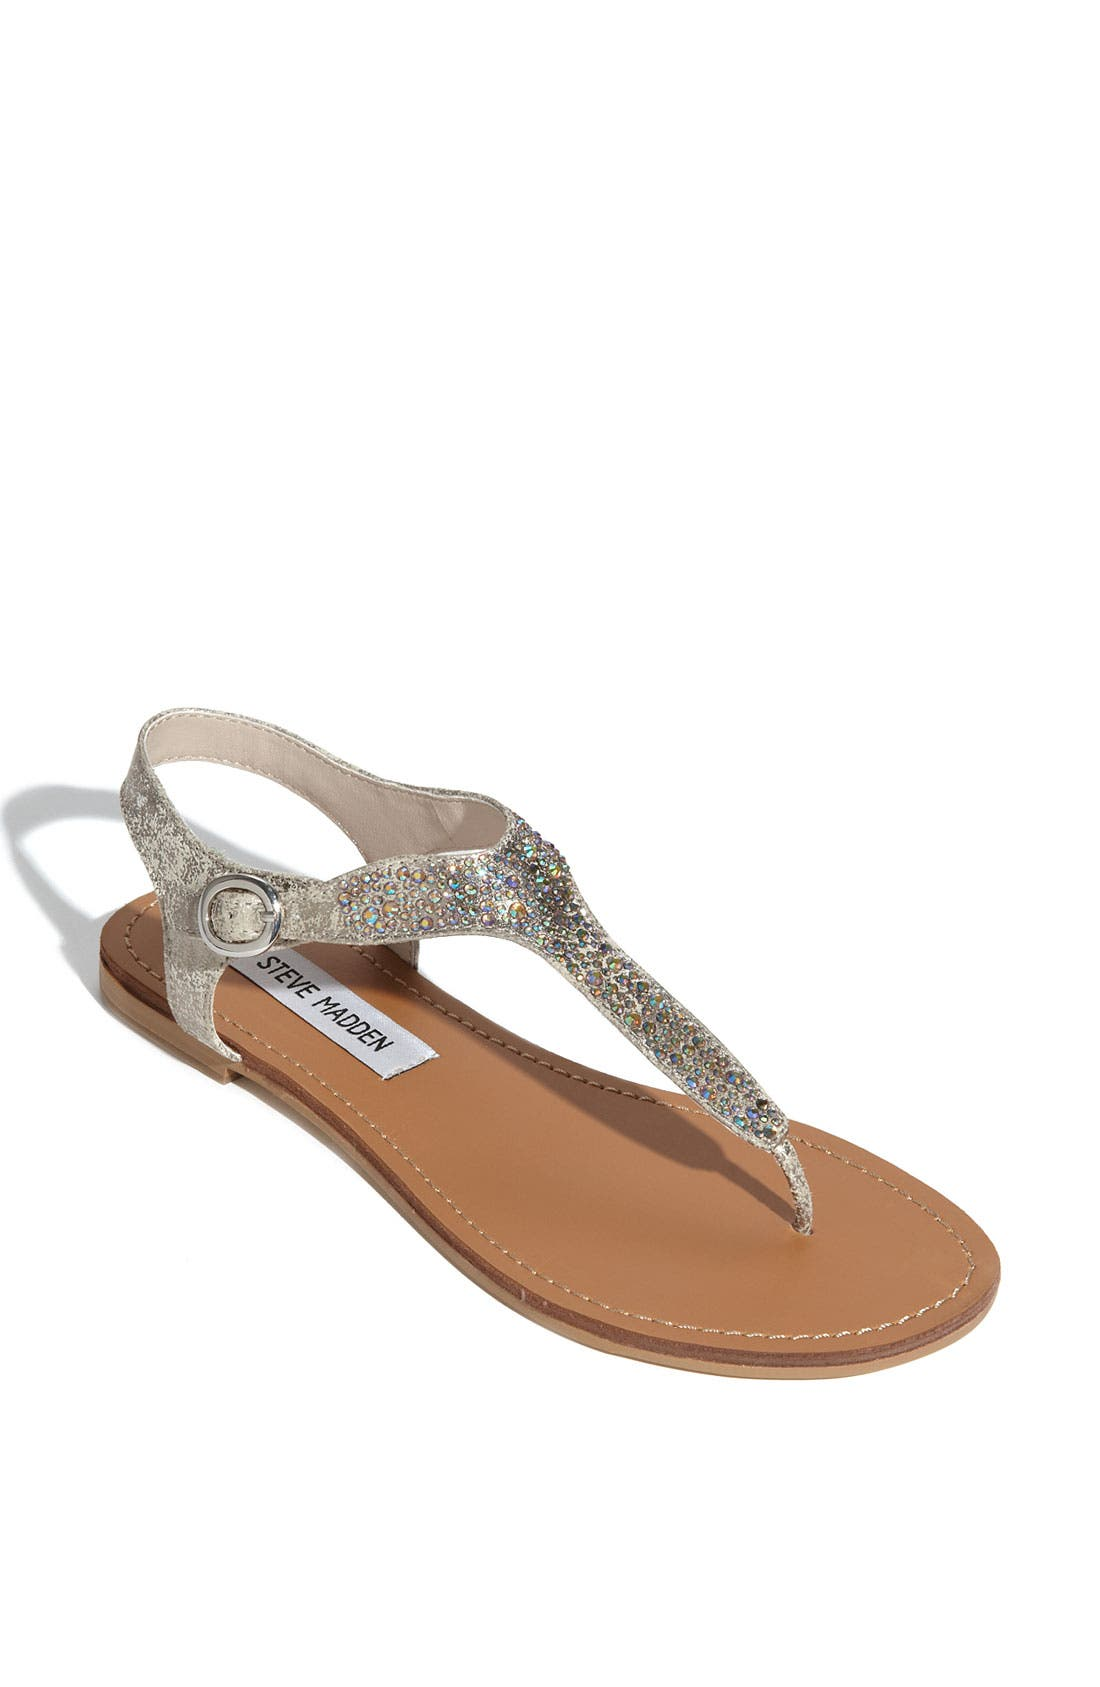 Alternate Image 1 Selected - Steve Madden 'Beaminng' Sandal